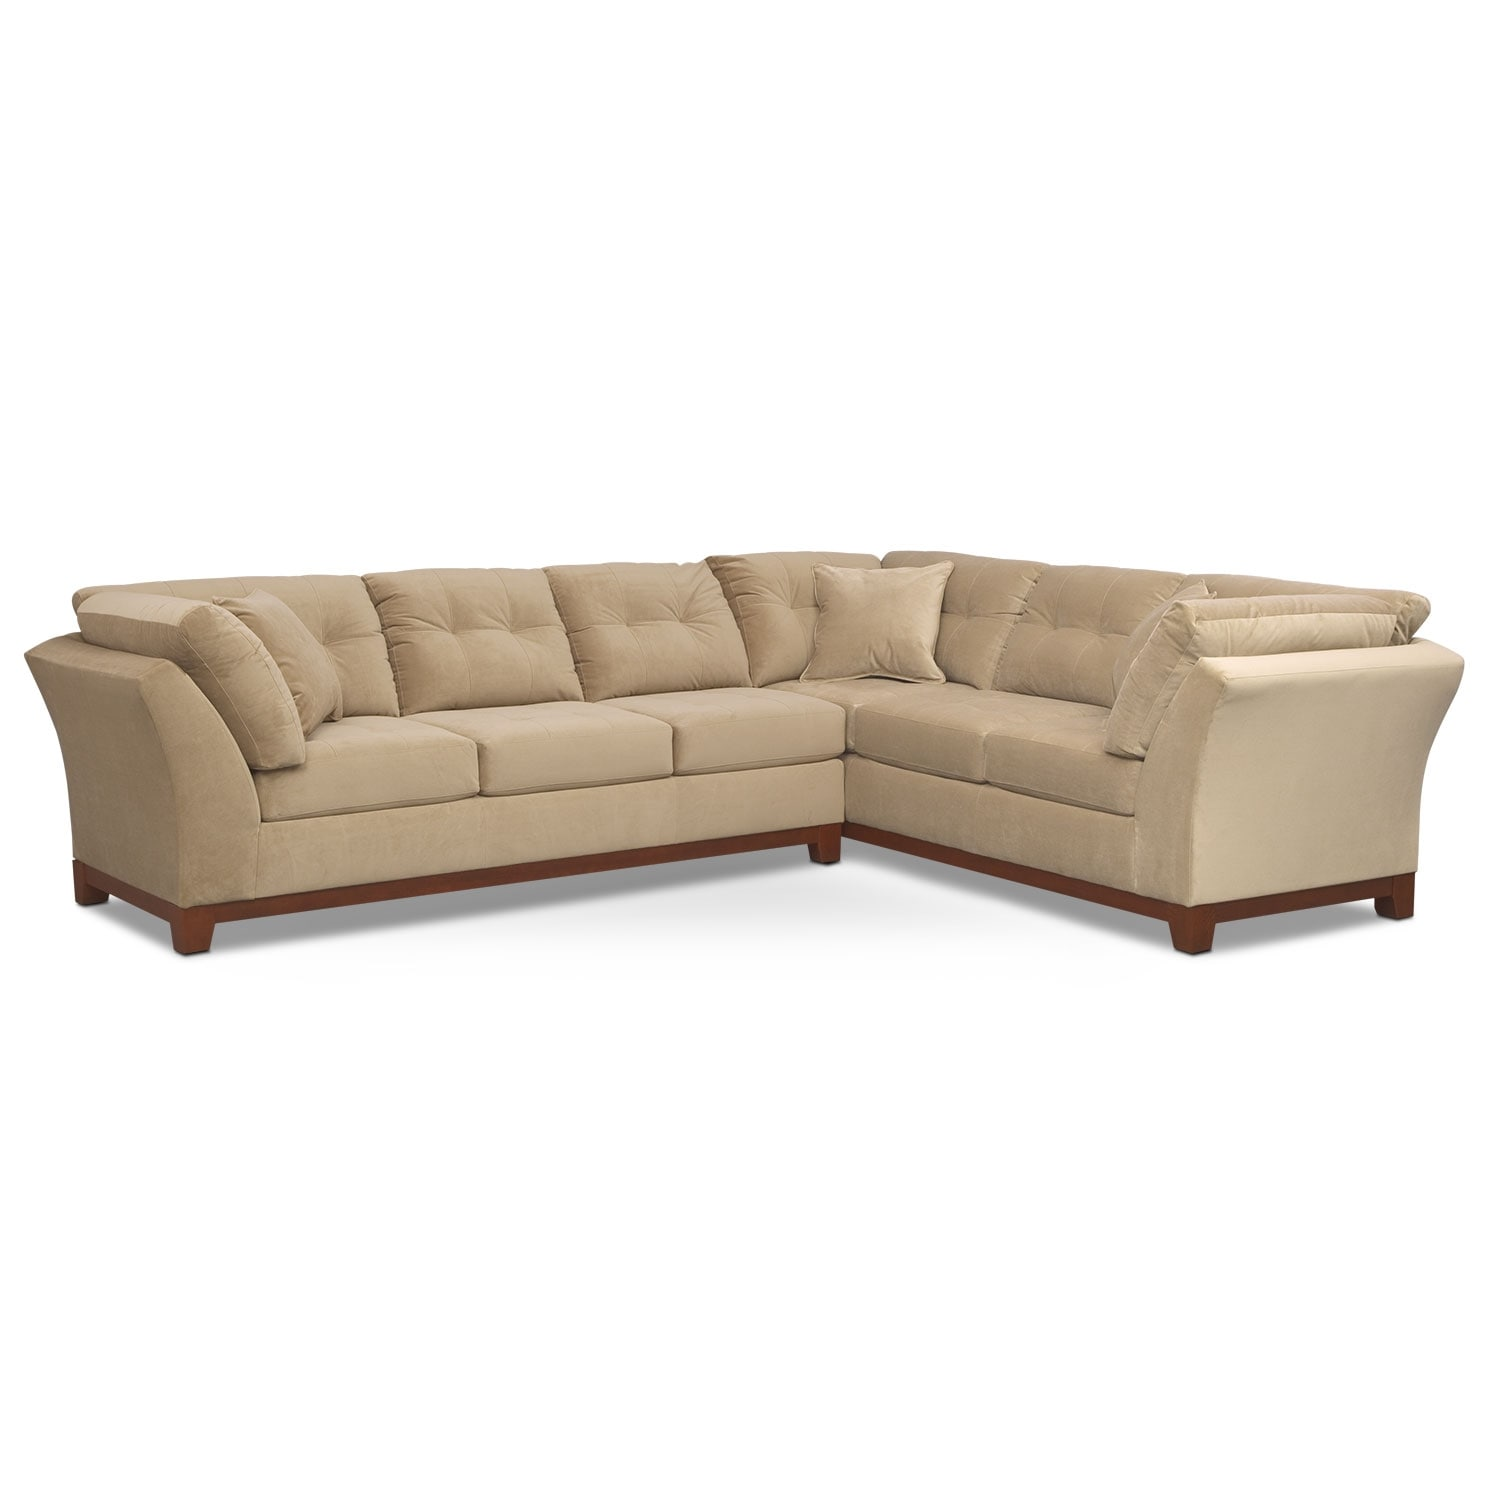 The Solace Sectional Collection